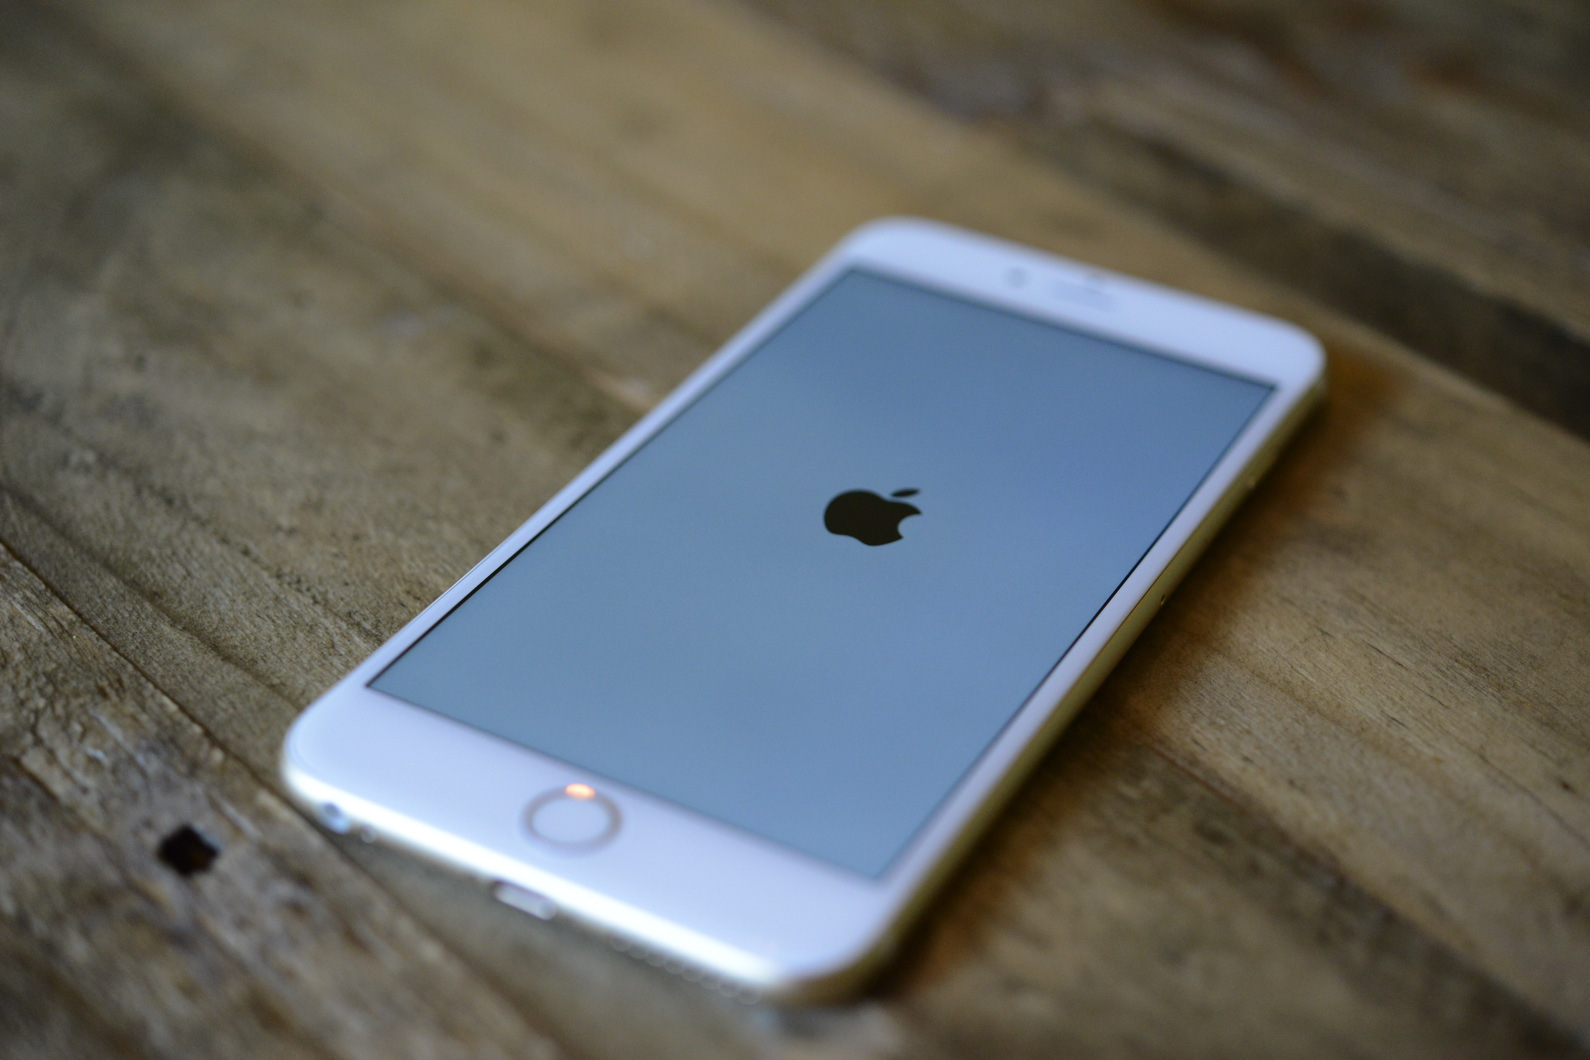 big_iphone6plus-hands-on_2712.jpg